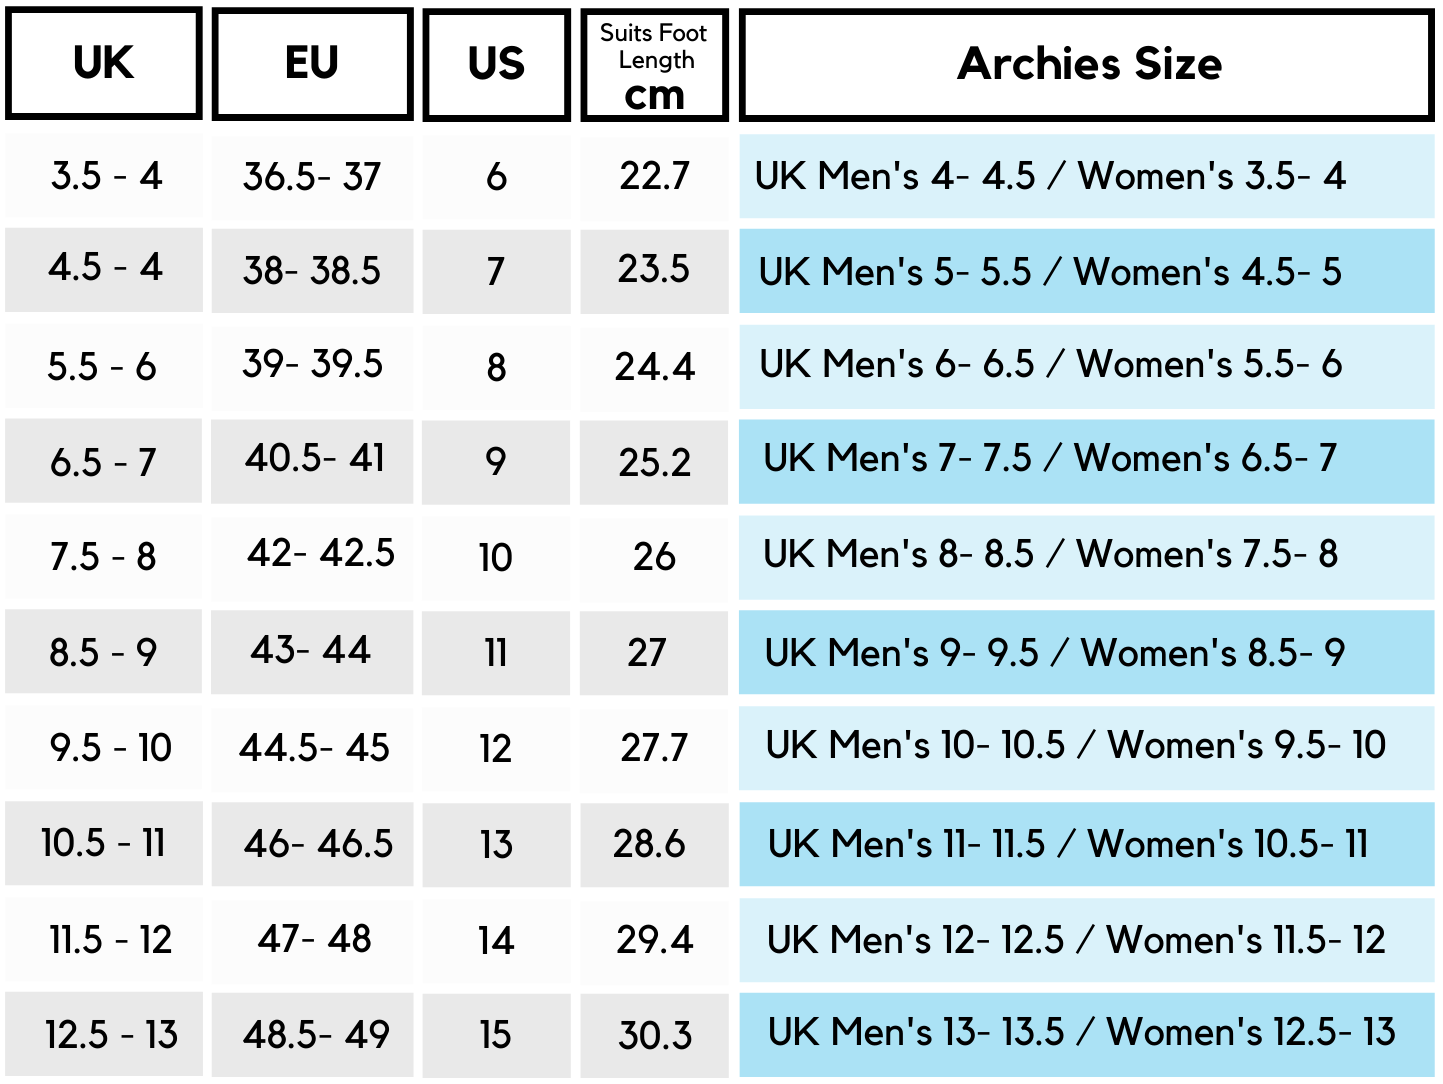 UK Archies Women's Size Chart